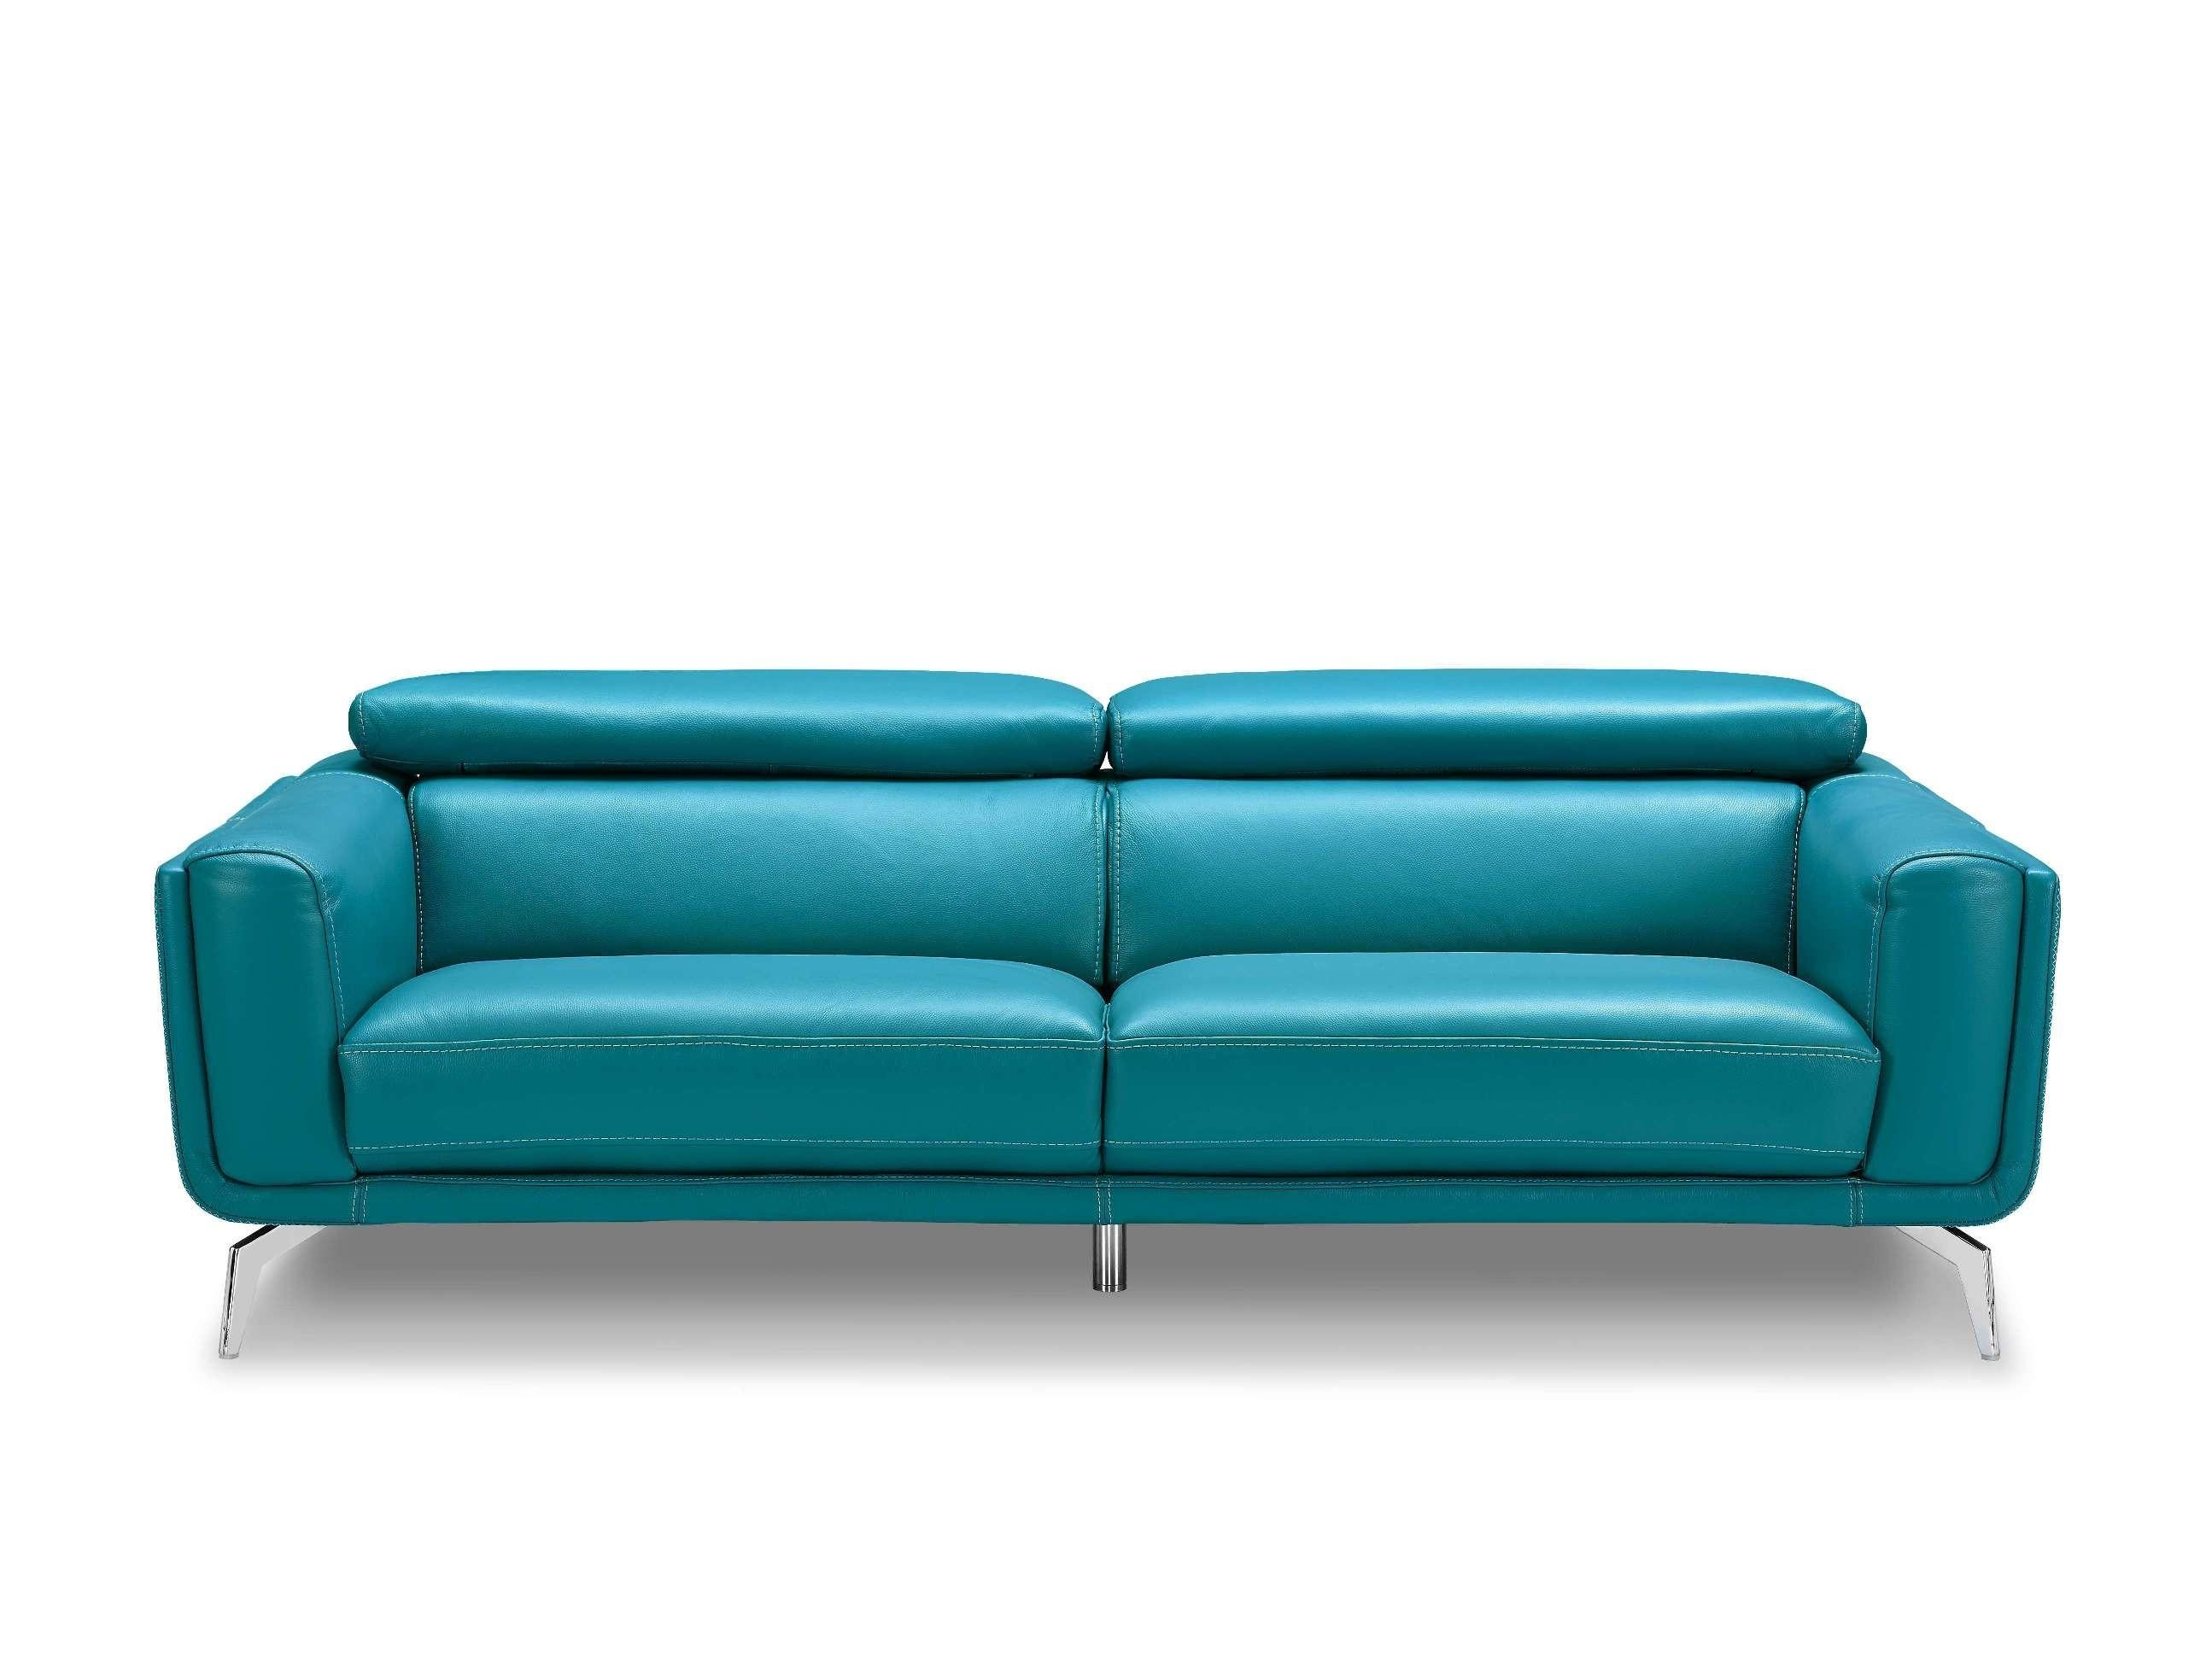 sofas with legs replacement sofa bed mattress 20 collection of chrome ideas